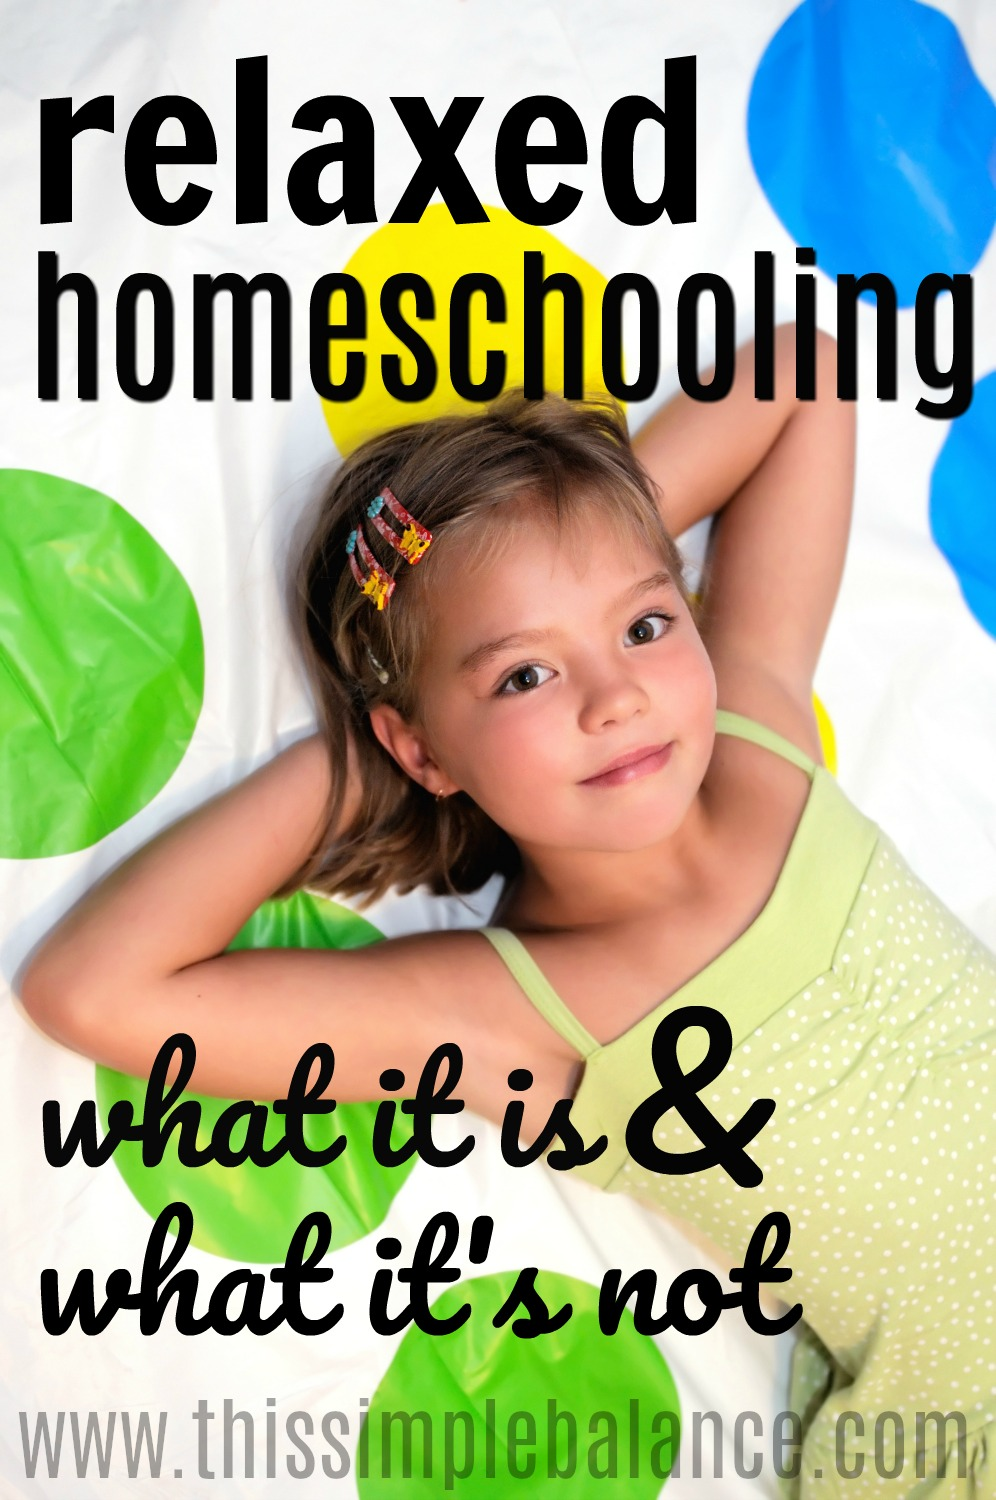 Relaxed Homeschooling: A homeschool style that's rarely talked about and often misunderstood. This post clearly defines relaxed homeschooling and how it differs from eclectic homeschooling and unschooling.